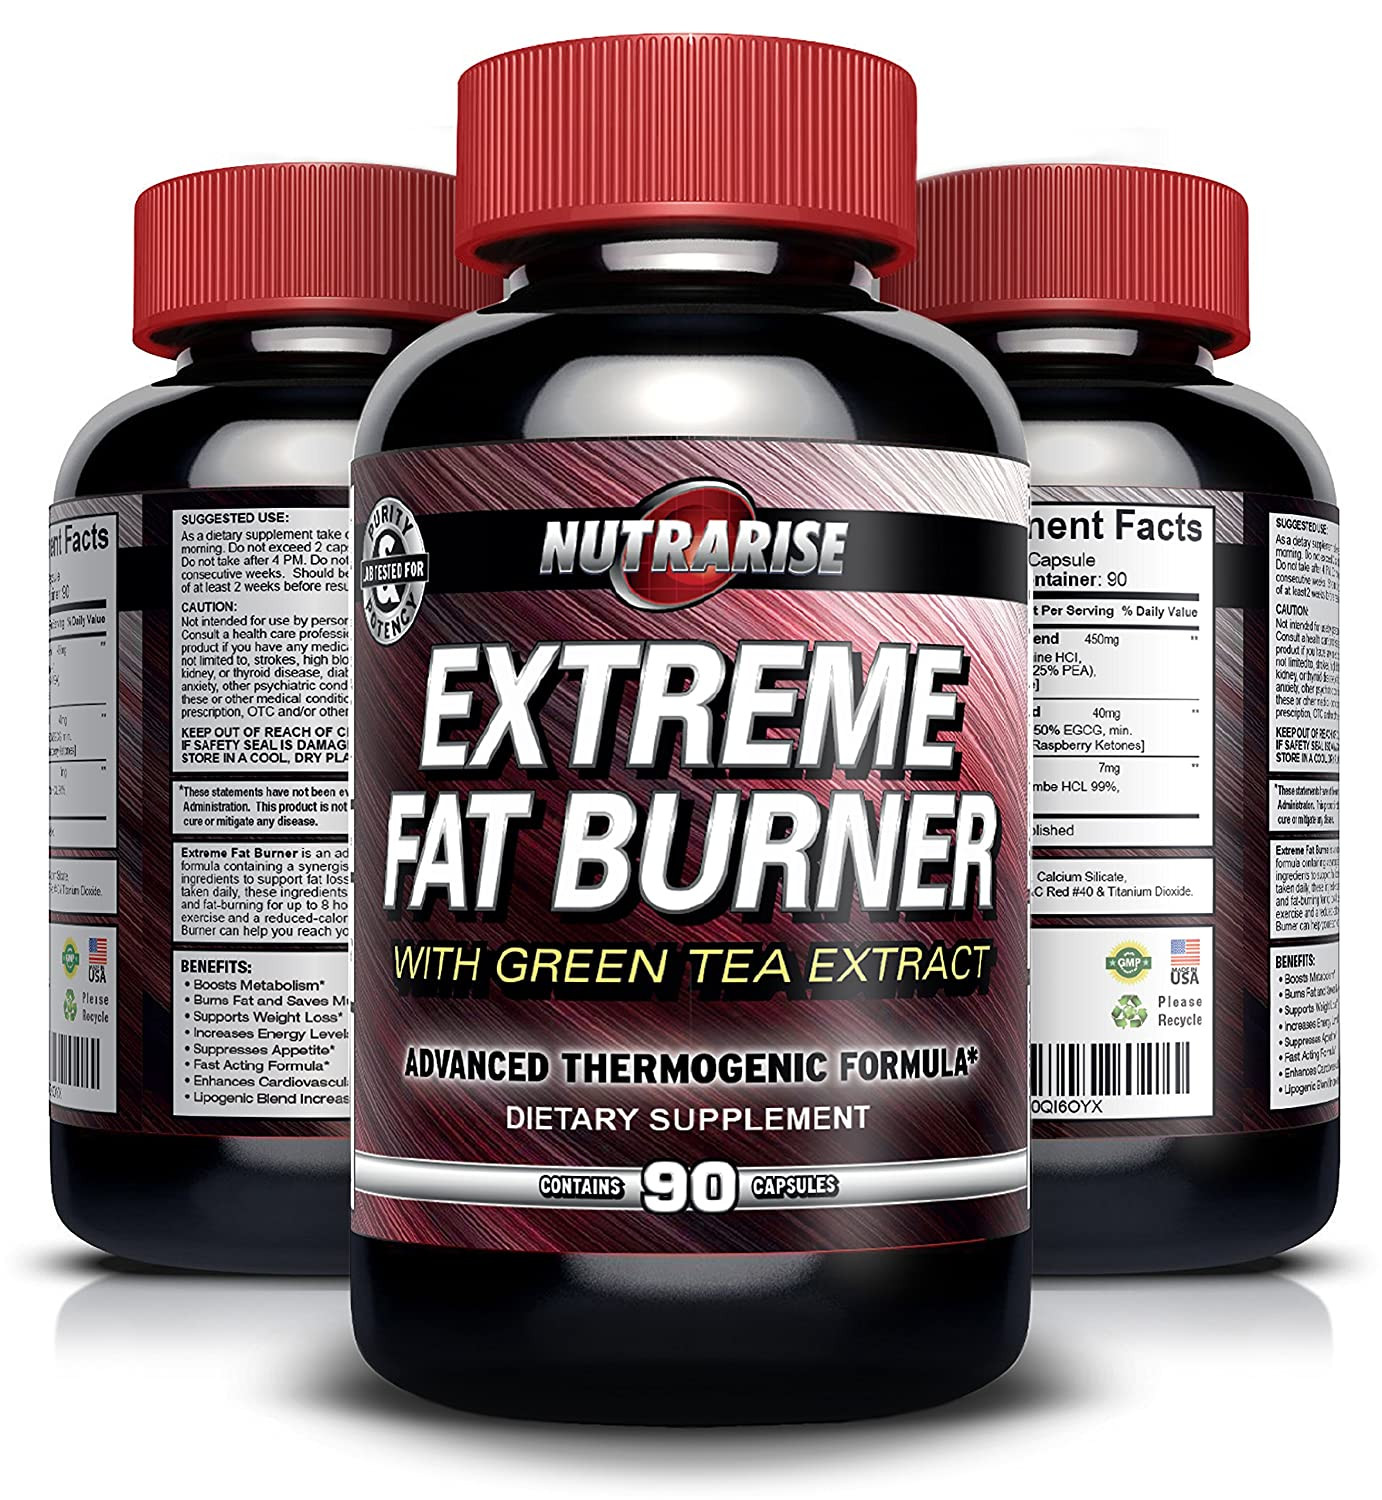 Weight Loss Supplements For Women Fat Burning  Extreme Thermogenic Fat Burner Weight Loss Pills For Men